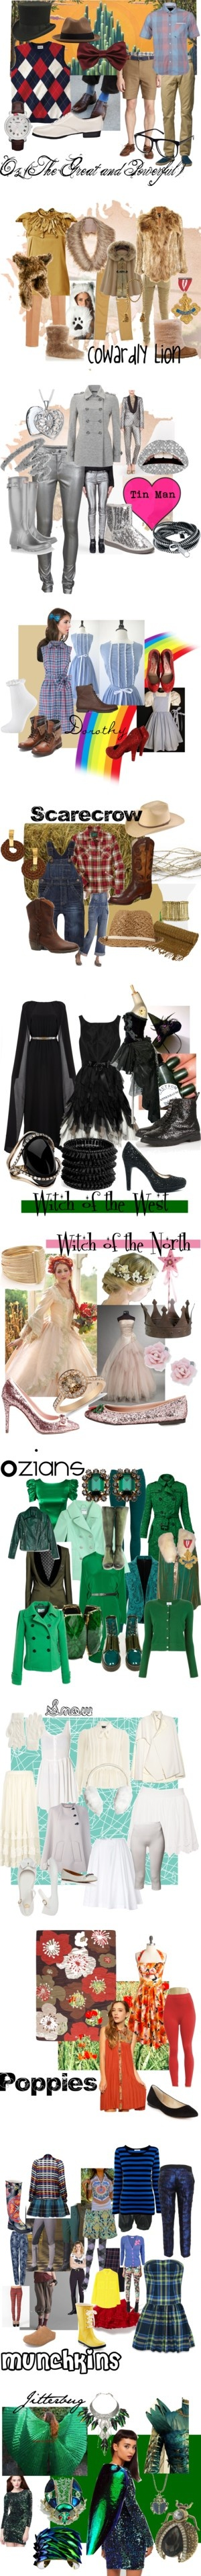 """Wizard of Oz Cast of Characters"" by britt-n-graham on Polyvore"